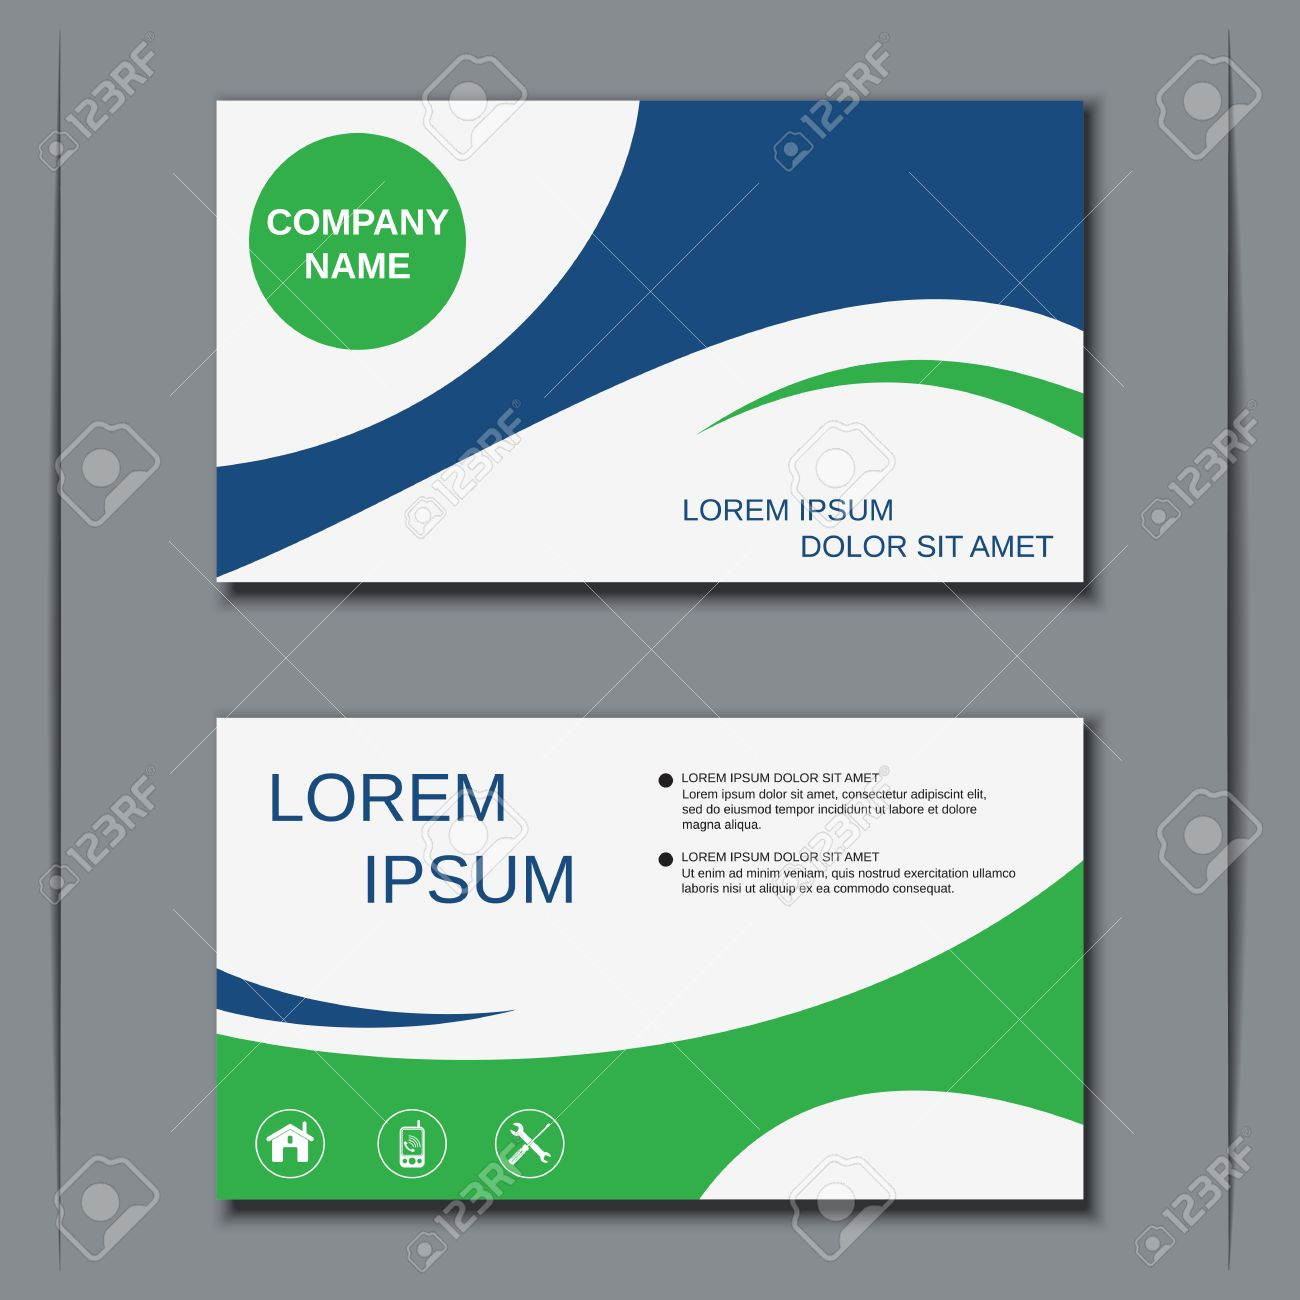 Modern Business Visiting Card Design Template Royalty Free ...